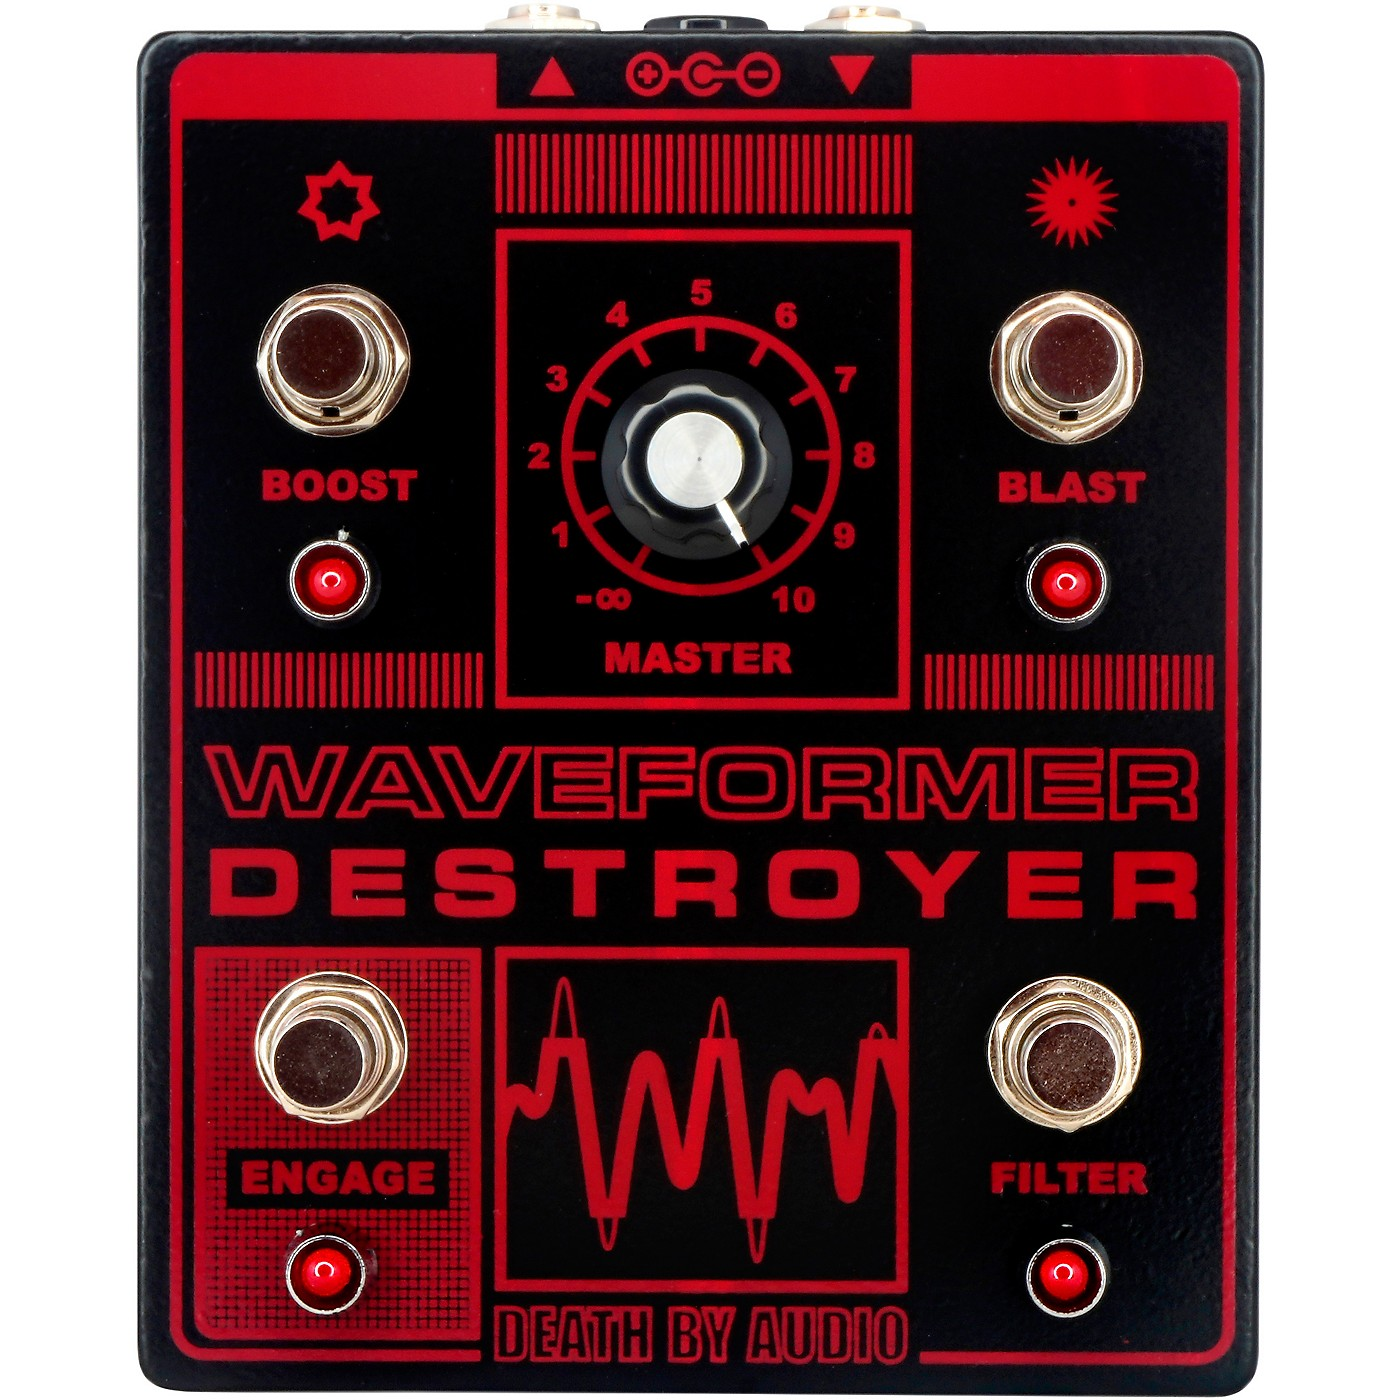 DEATH BY AUDIO Waveformer Destroyer Multi-channel Fuzz Effects Pedal thumbnail